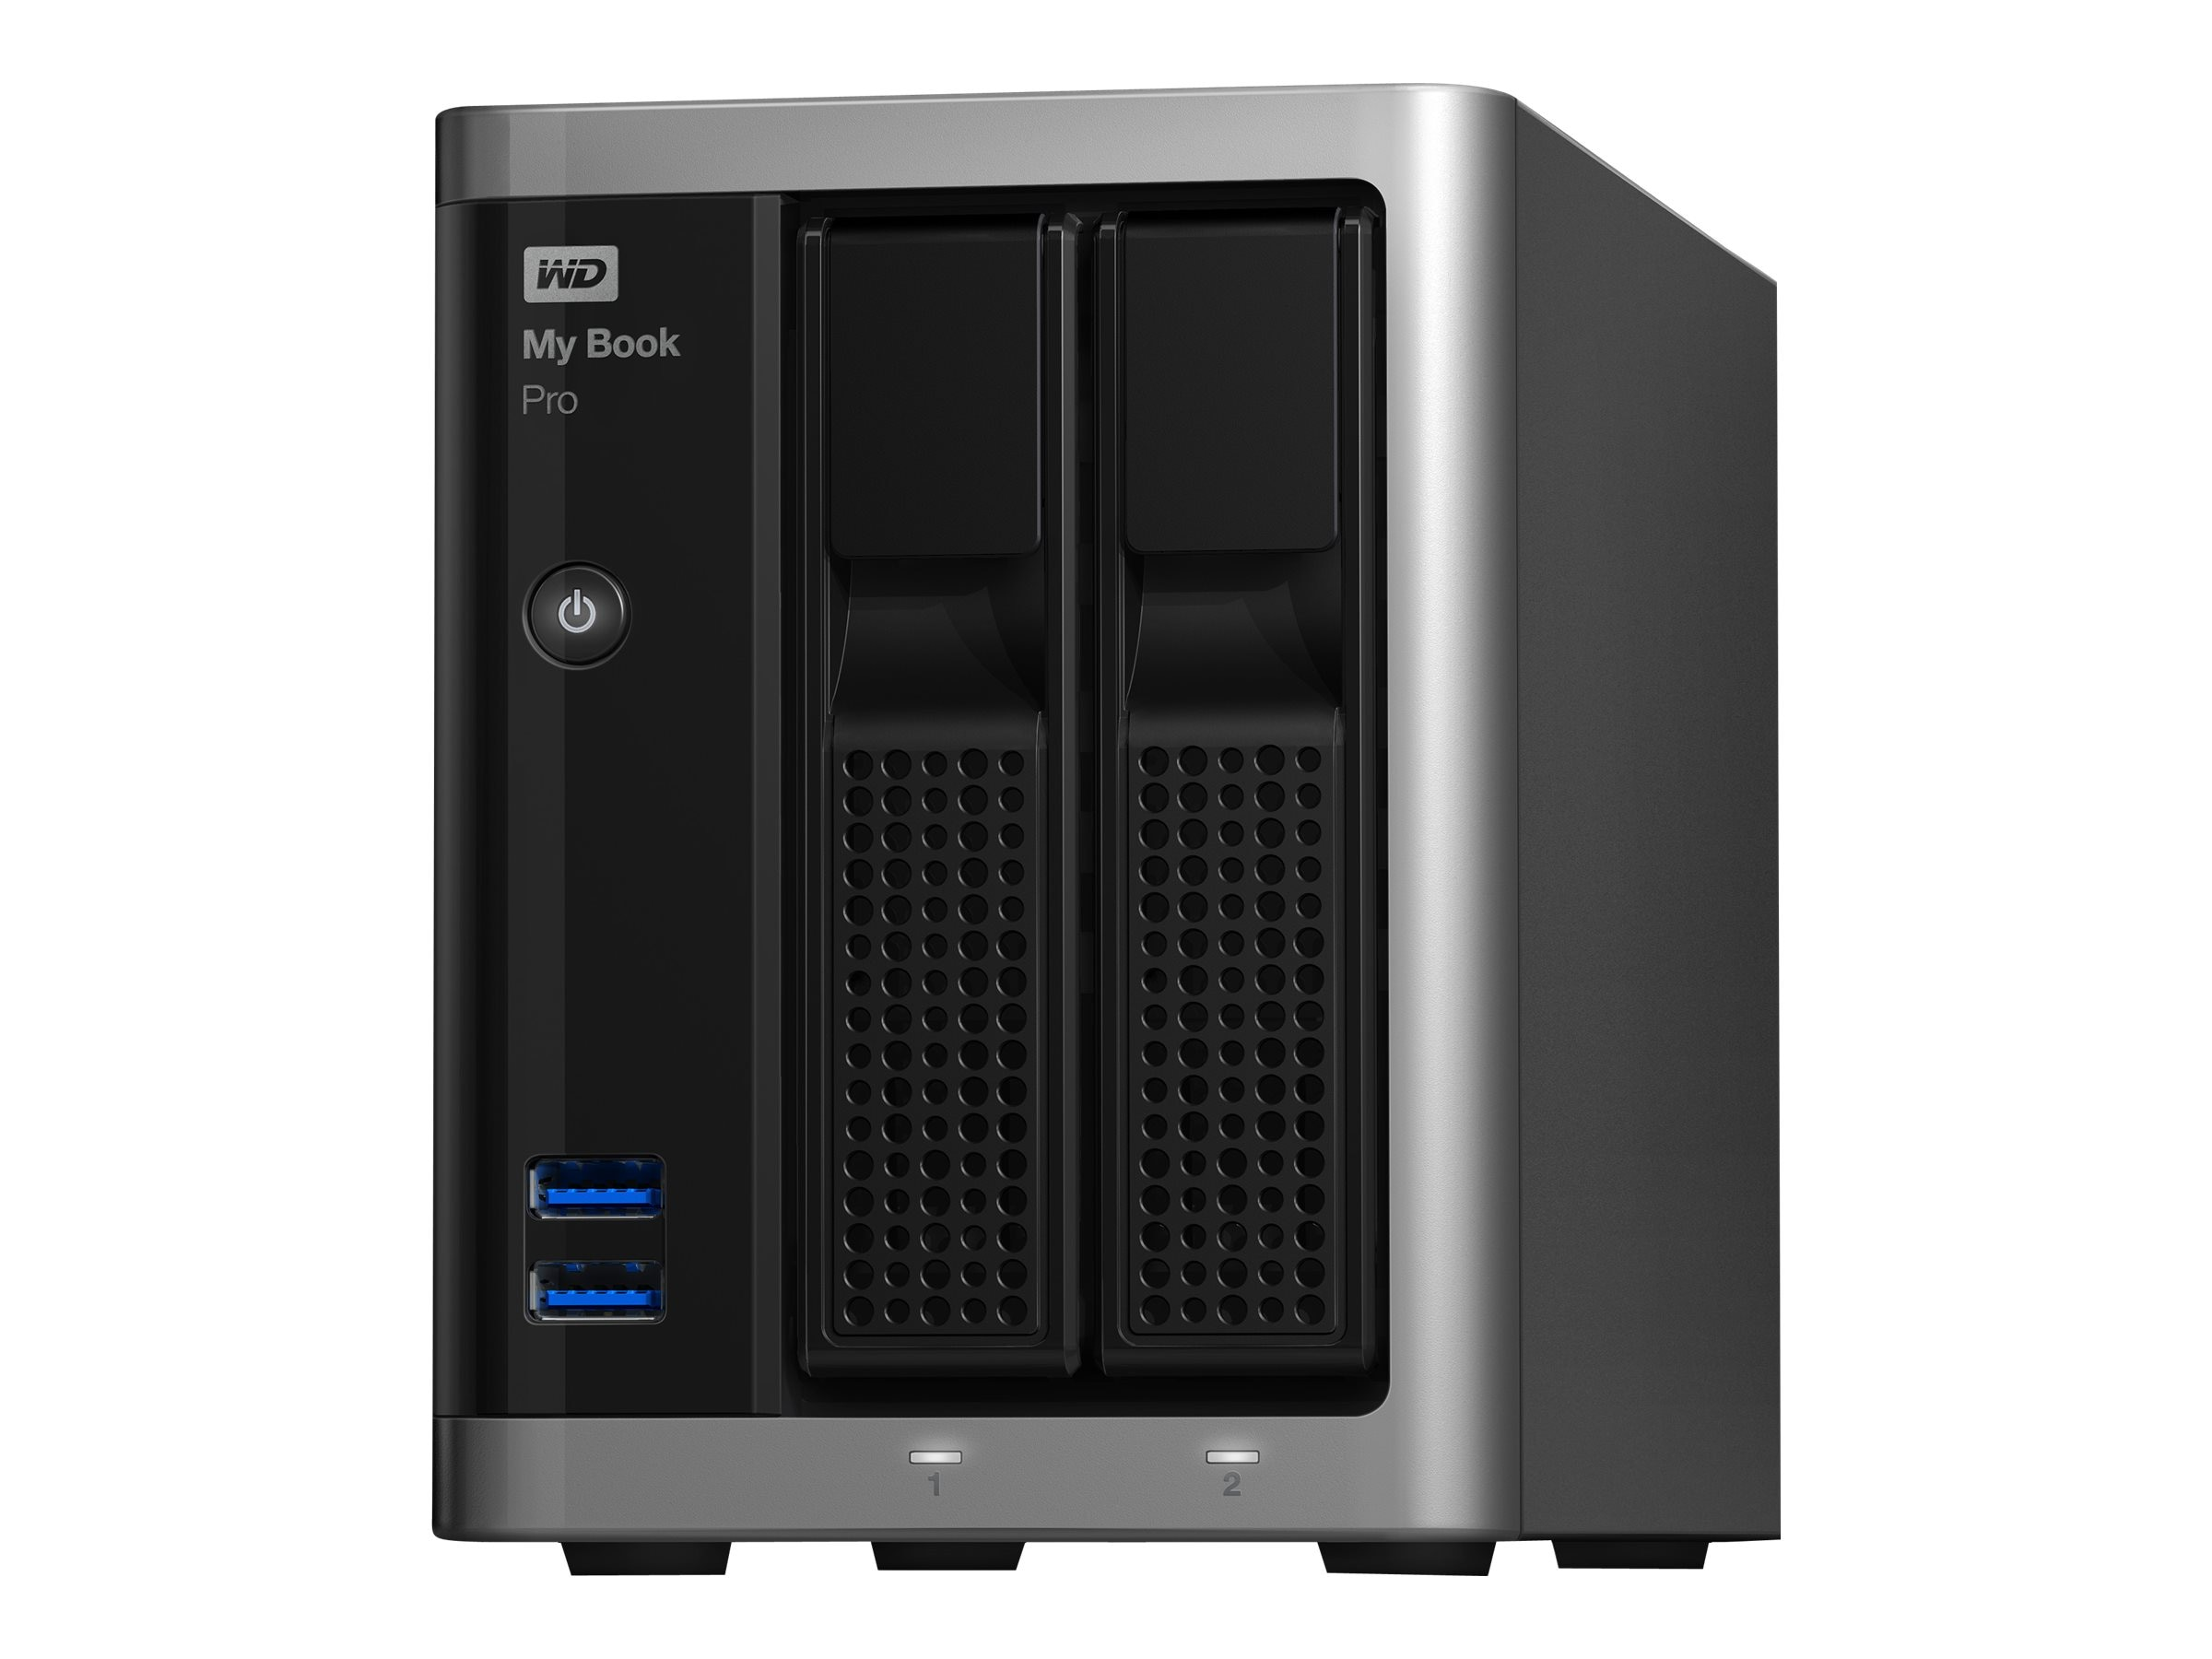 WD 6TB My Book Pro Dual Drive Thunderbolt2 RAID Storage, WDBDTB0060JSL-NESN, 23730153, Hard Drives - External